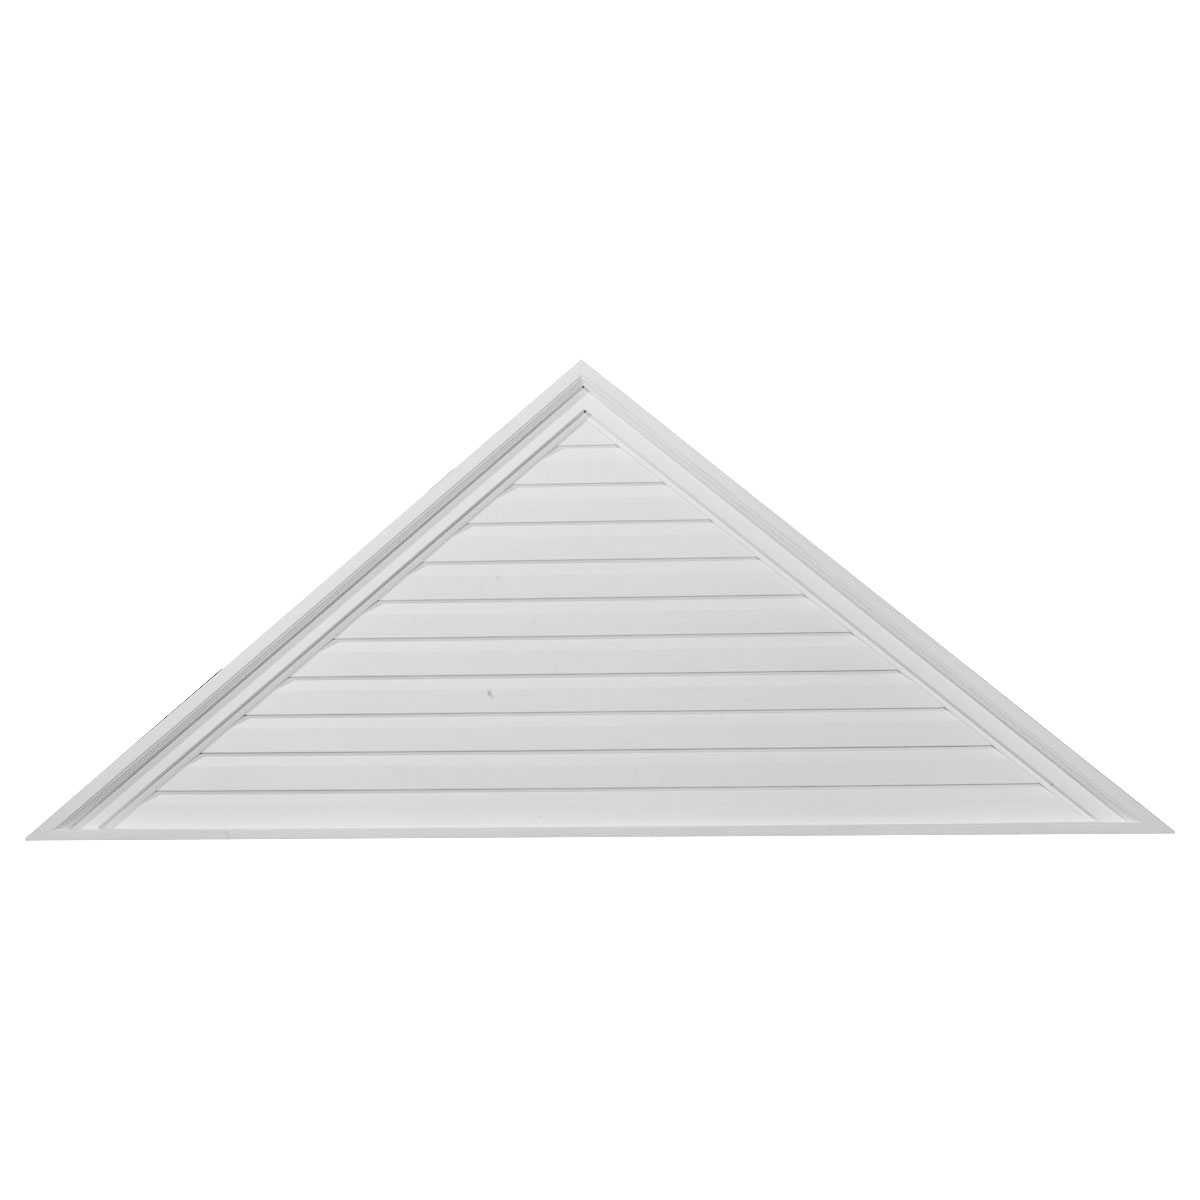 Ekena Millwork GVTR72X18D 72 inch W x 18 inch H x 2. 12 inch P Decorative Accents - Pitch 6 by 12 Triangle Gable Vent